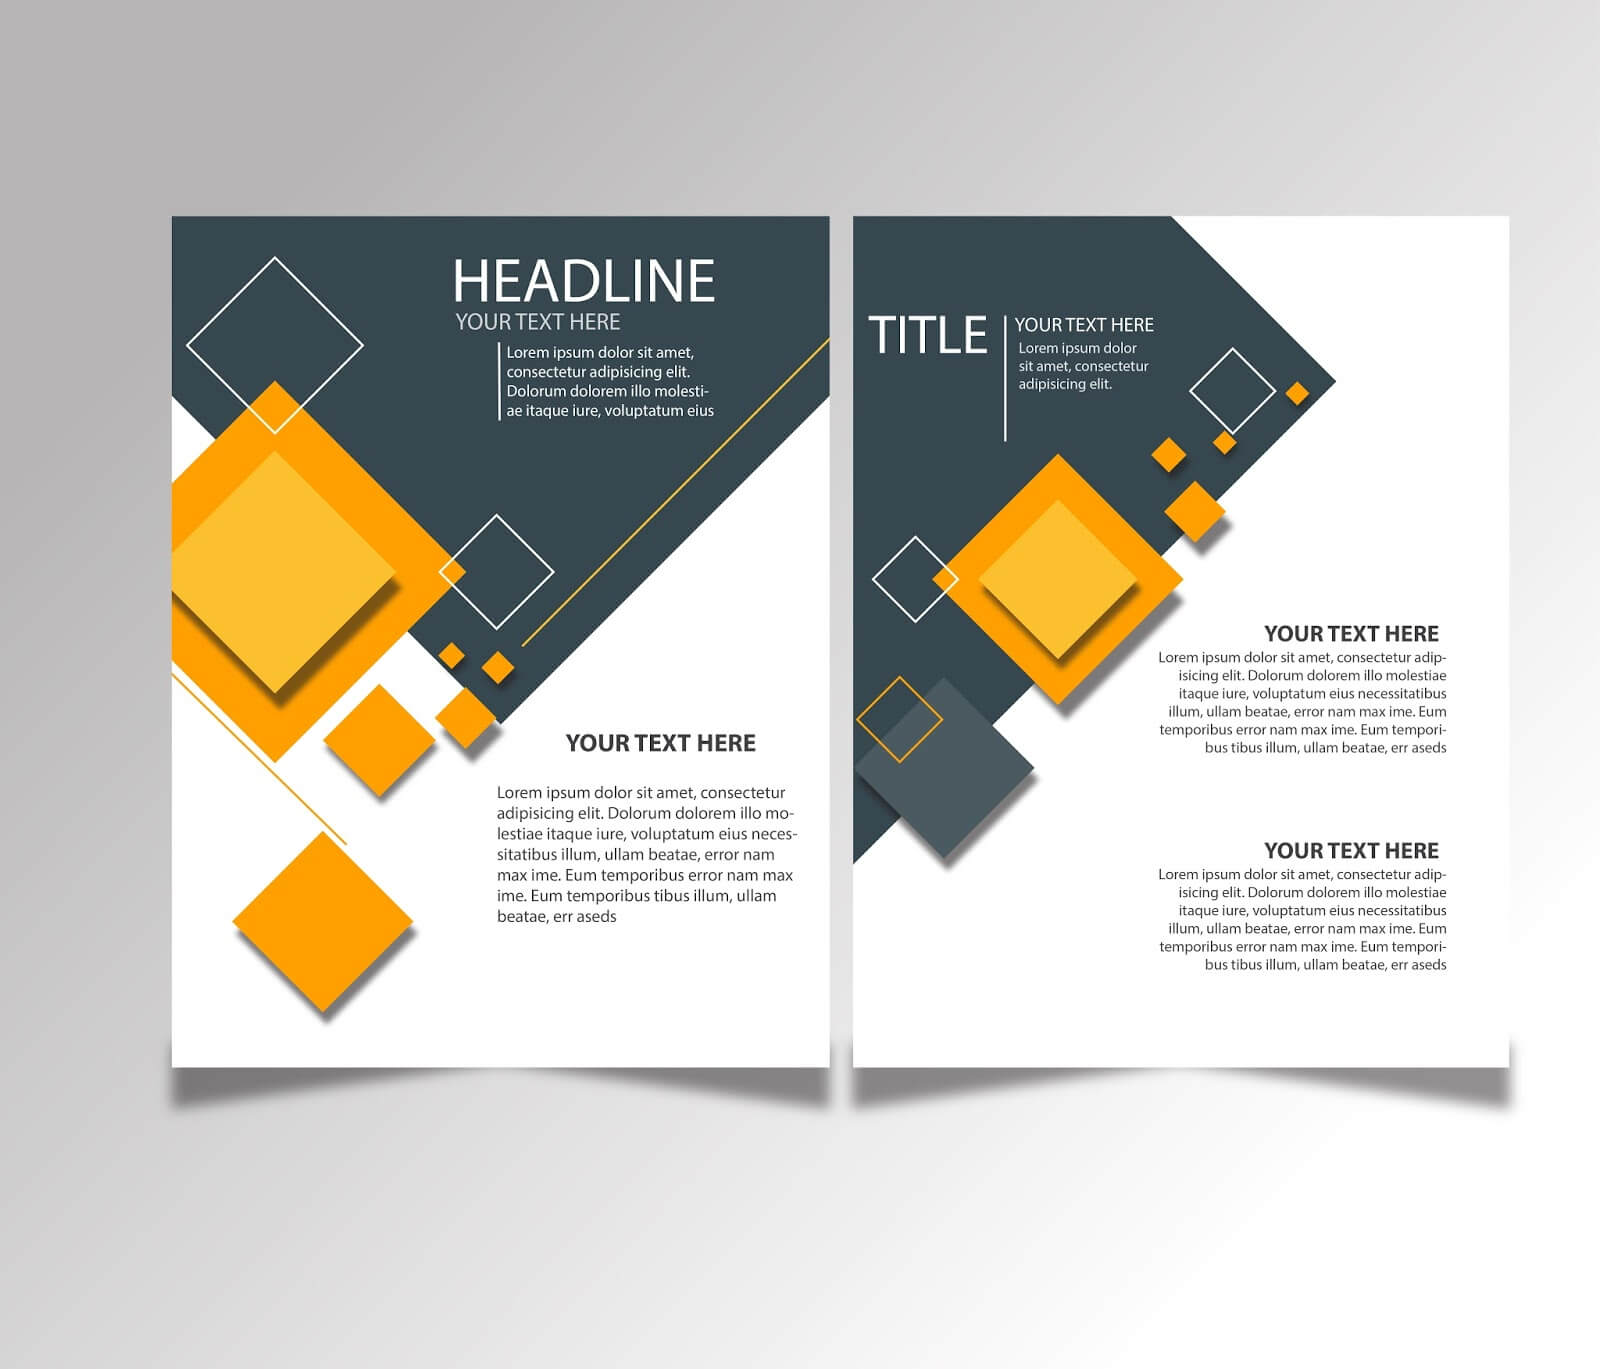 Free Download Brochure Design Templates Ai Files - Ideosprocess Intended For Brochure Template Illustrator Free Download